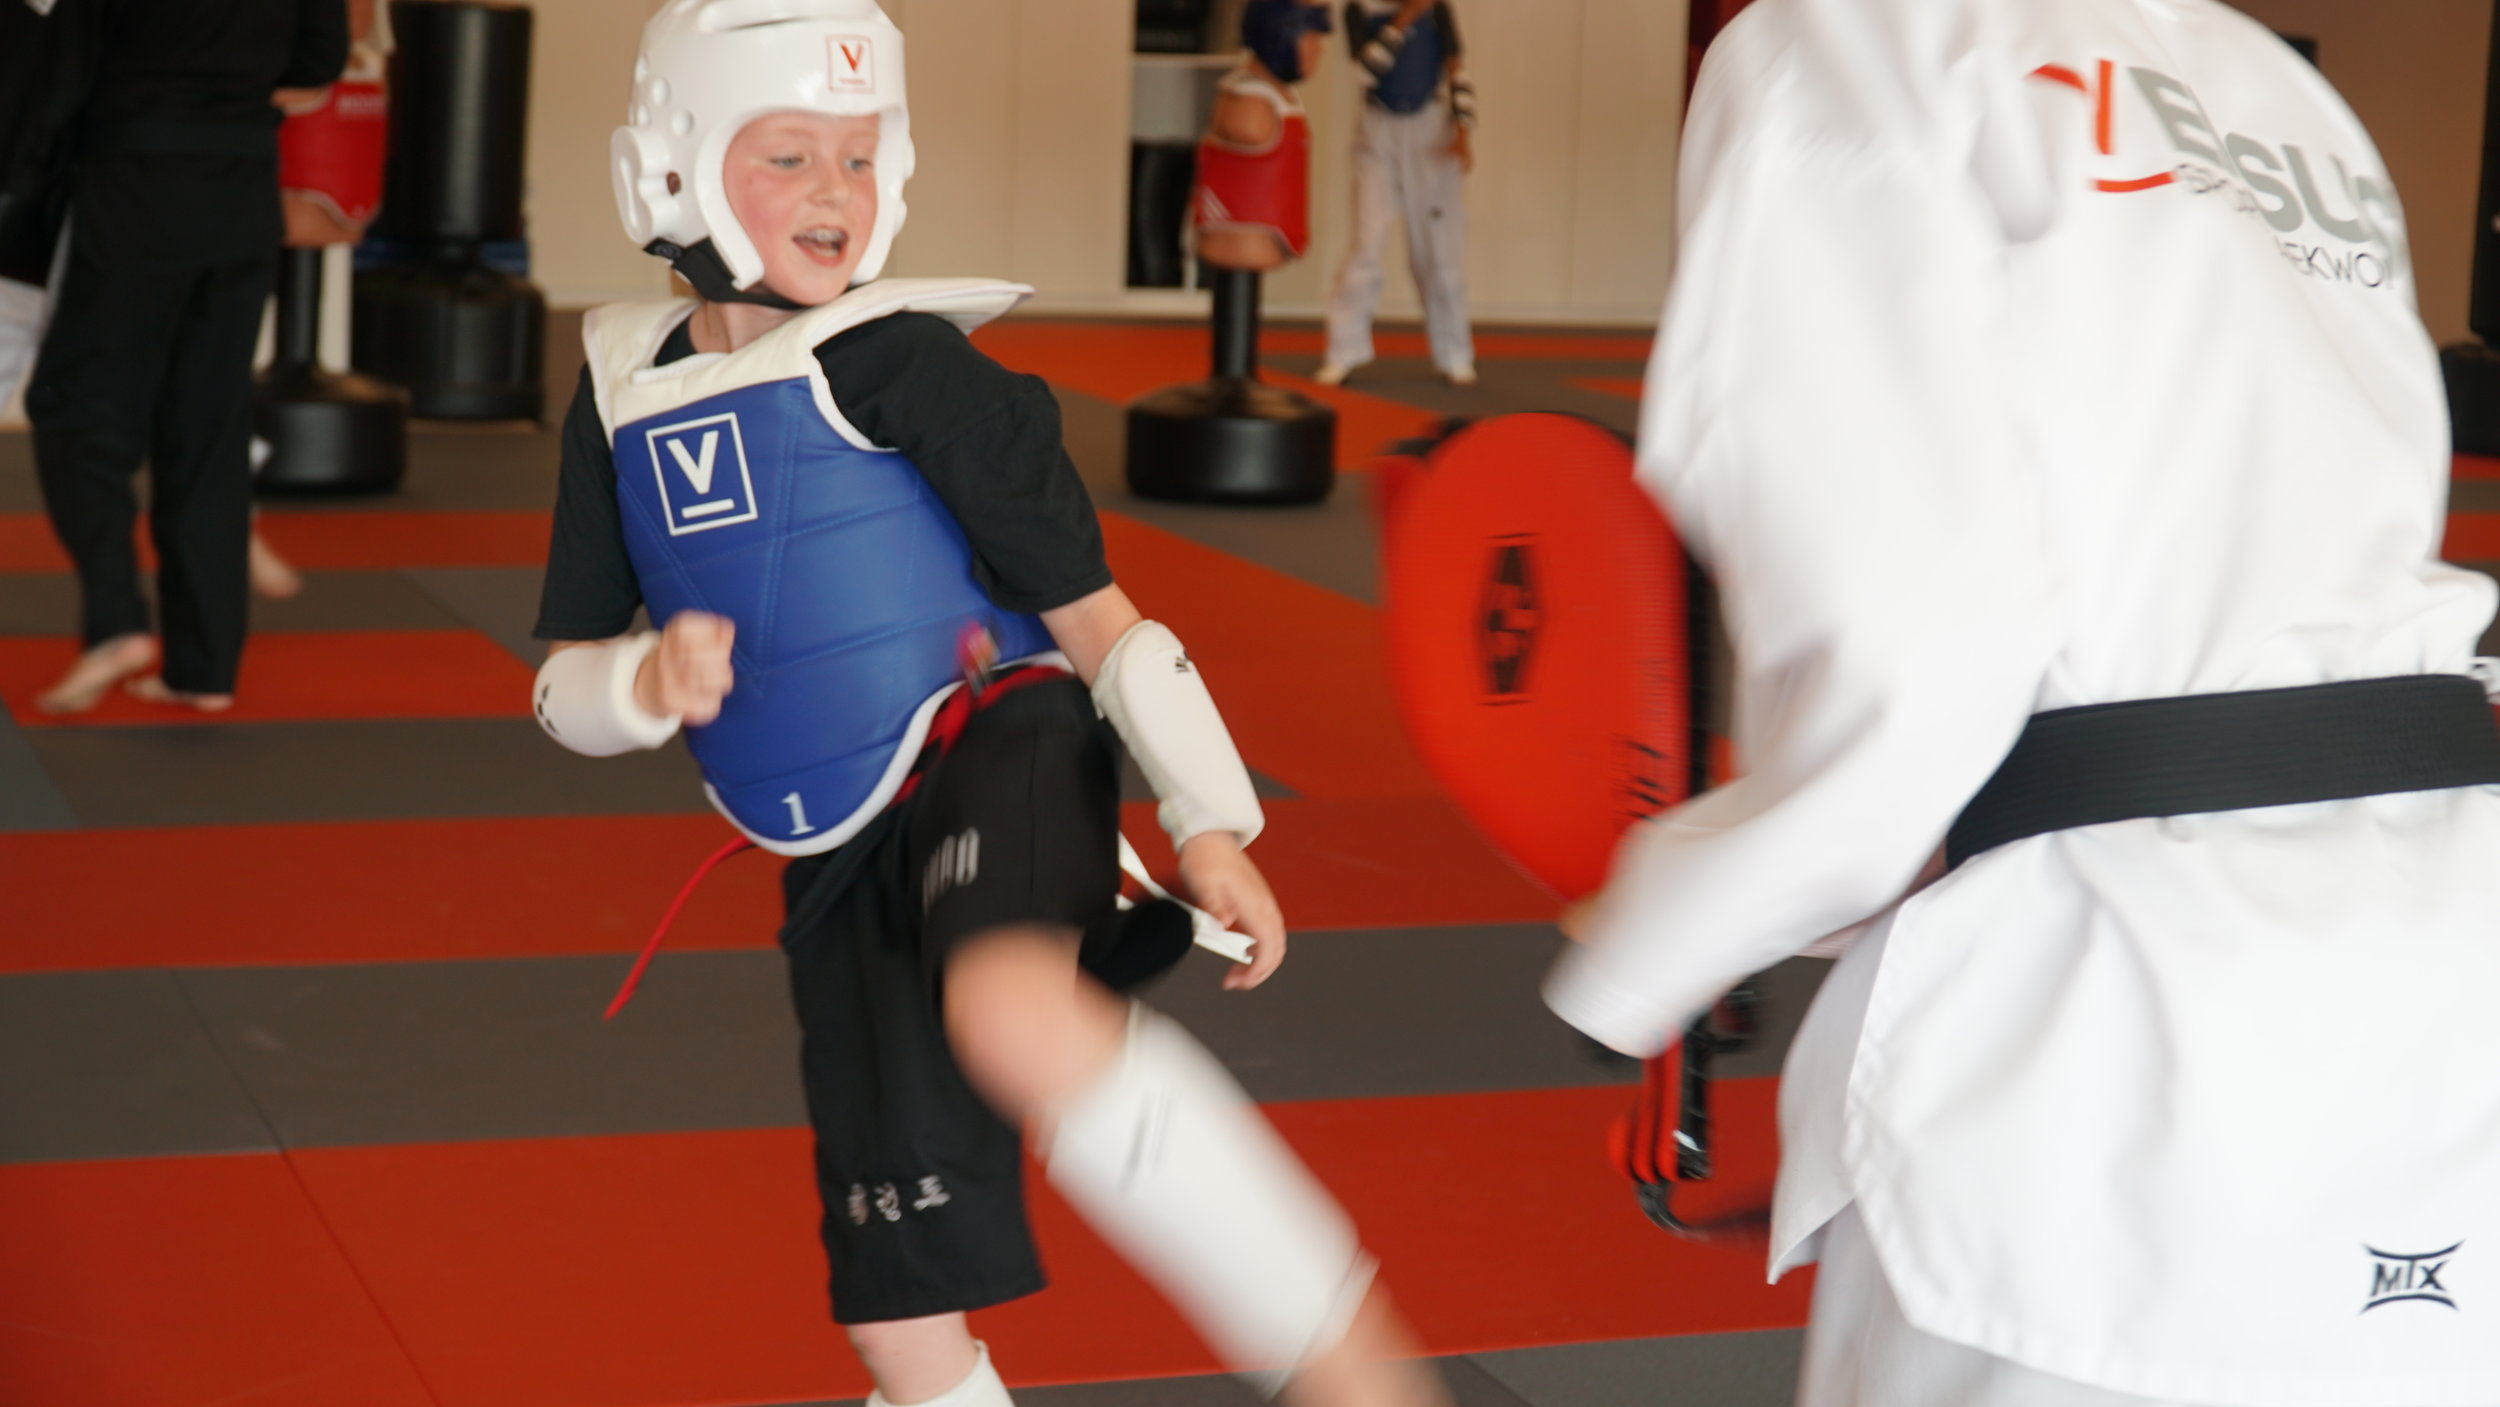 MARTIAL ARTS VALUES - Vesus Sport Taekwondo believes that the traditional values of martial arts including respect, discipline, and confidence should always be at the core of training in the sport of taekwondo. Through our foundation as martial artists, our students strive for balance between the body, personality and mind.